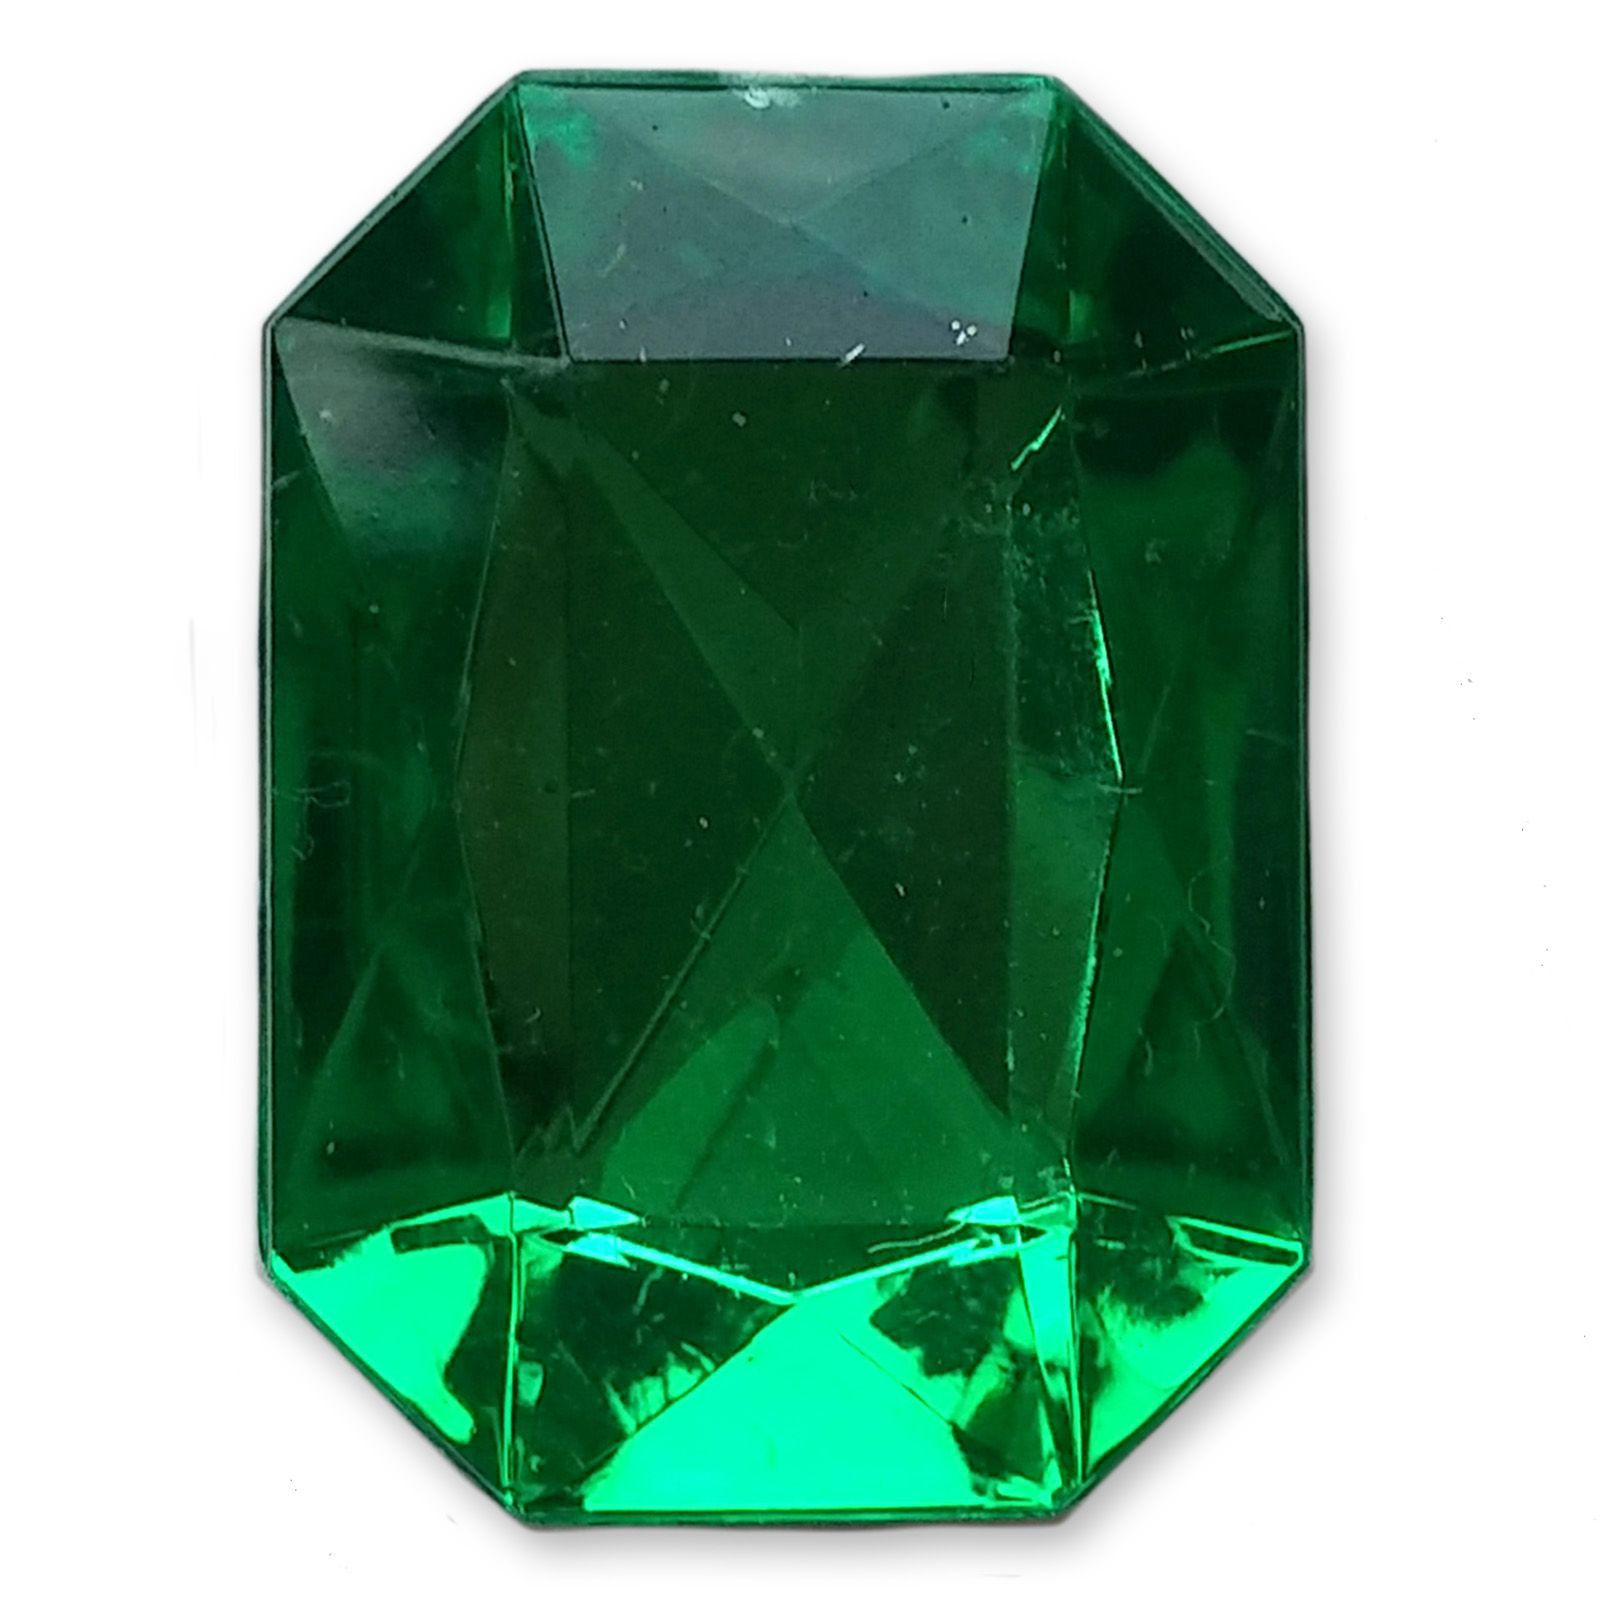 jewelry gemselect emerald info gem gems about large green information gemstone